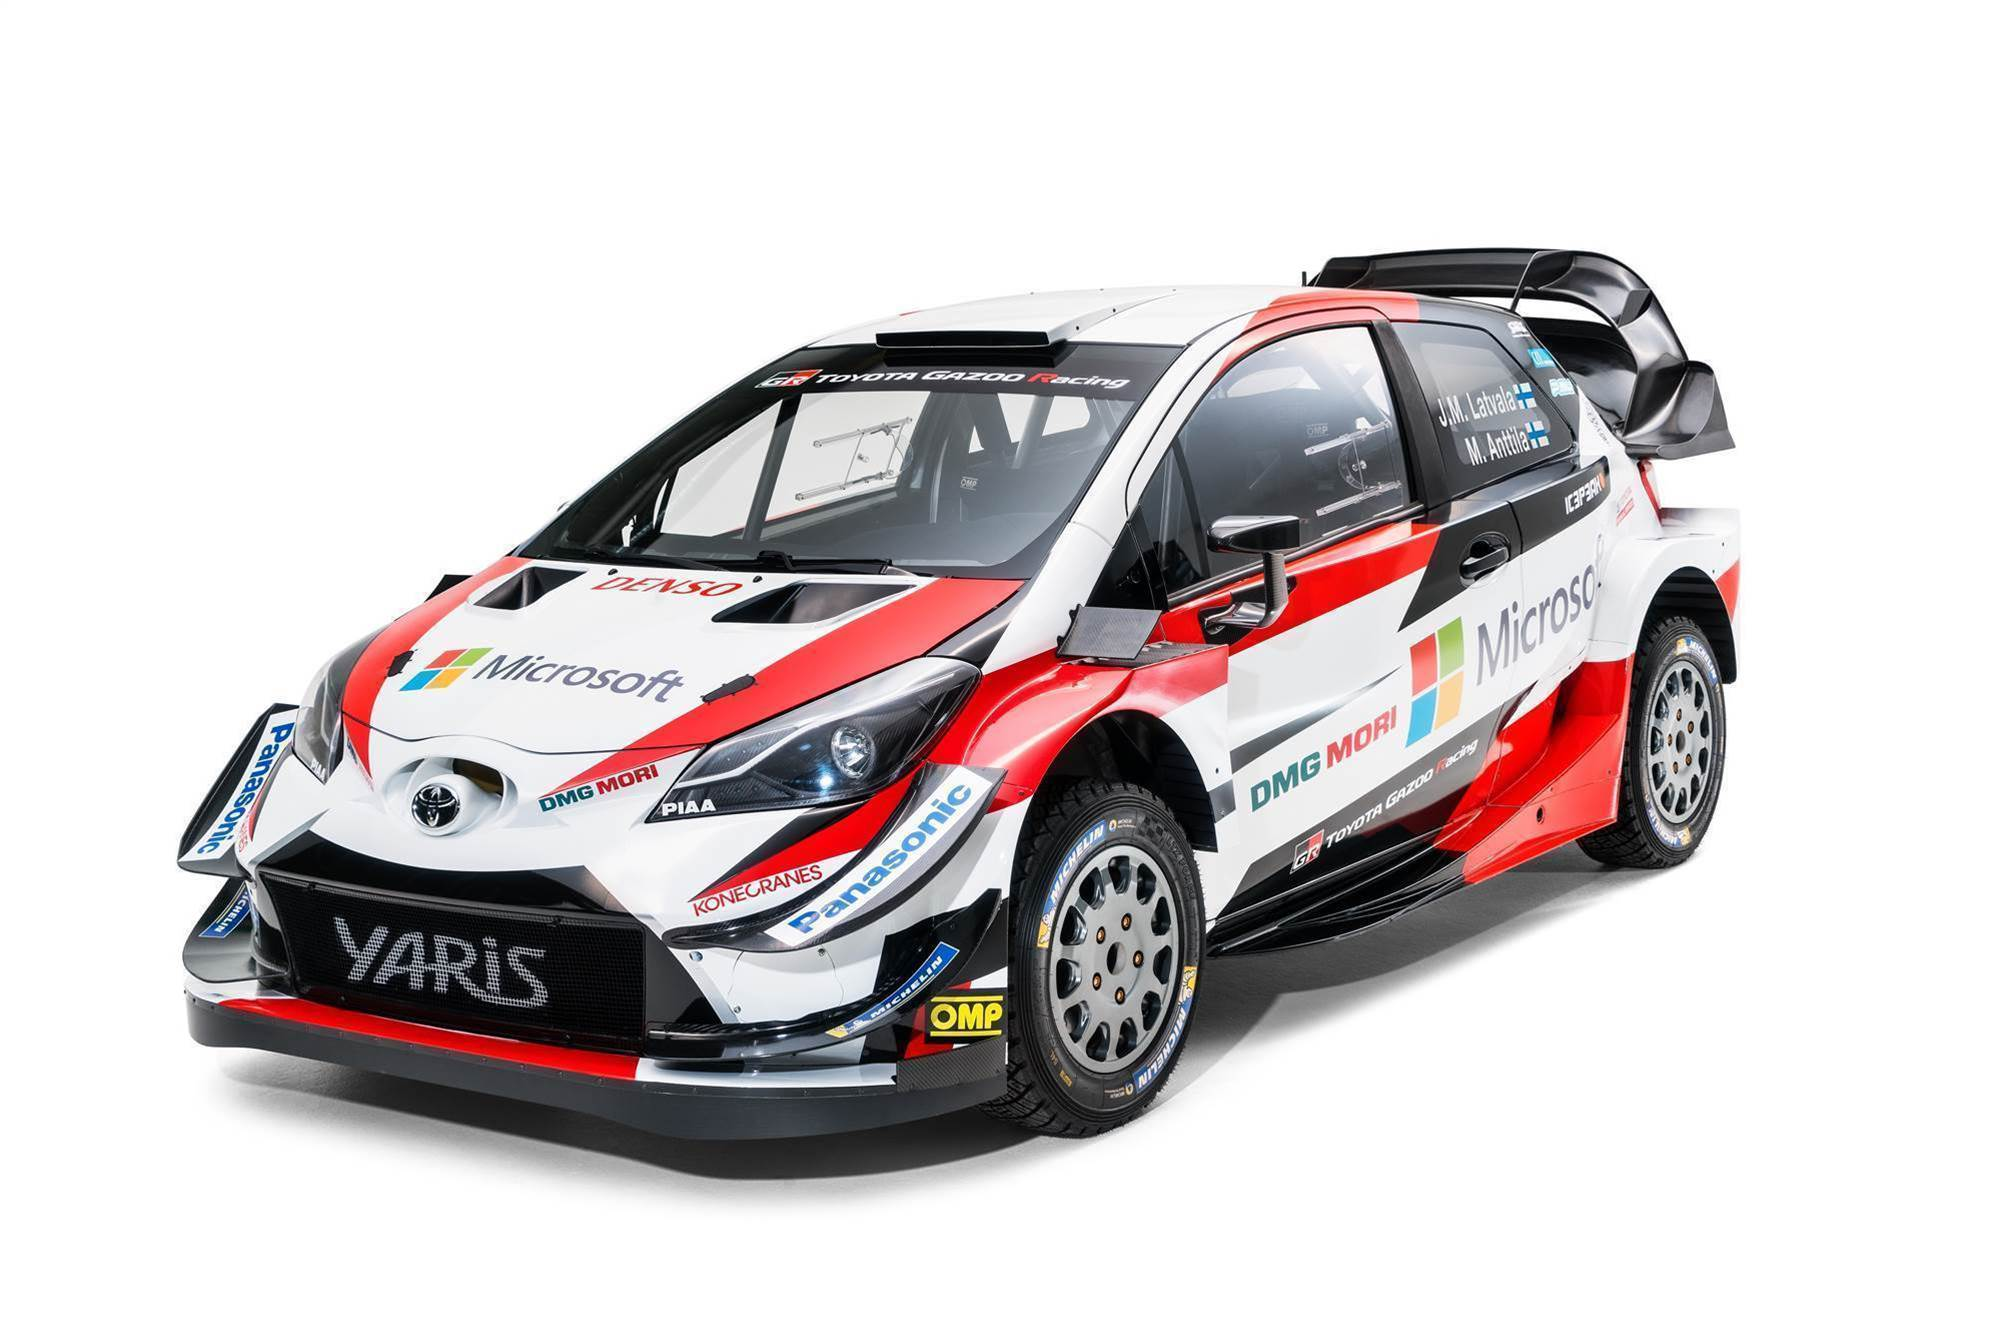 Toyota unveils new wrc contender